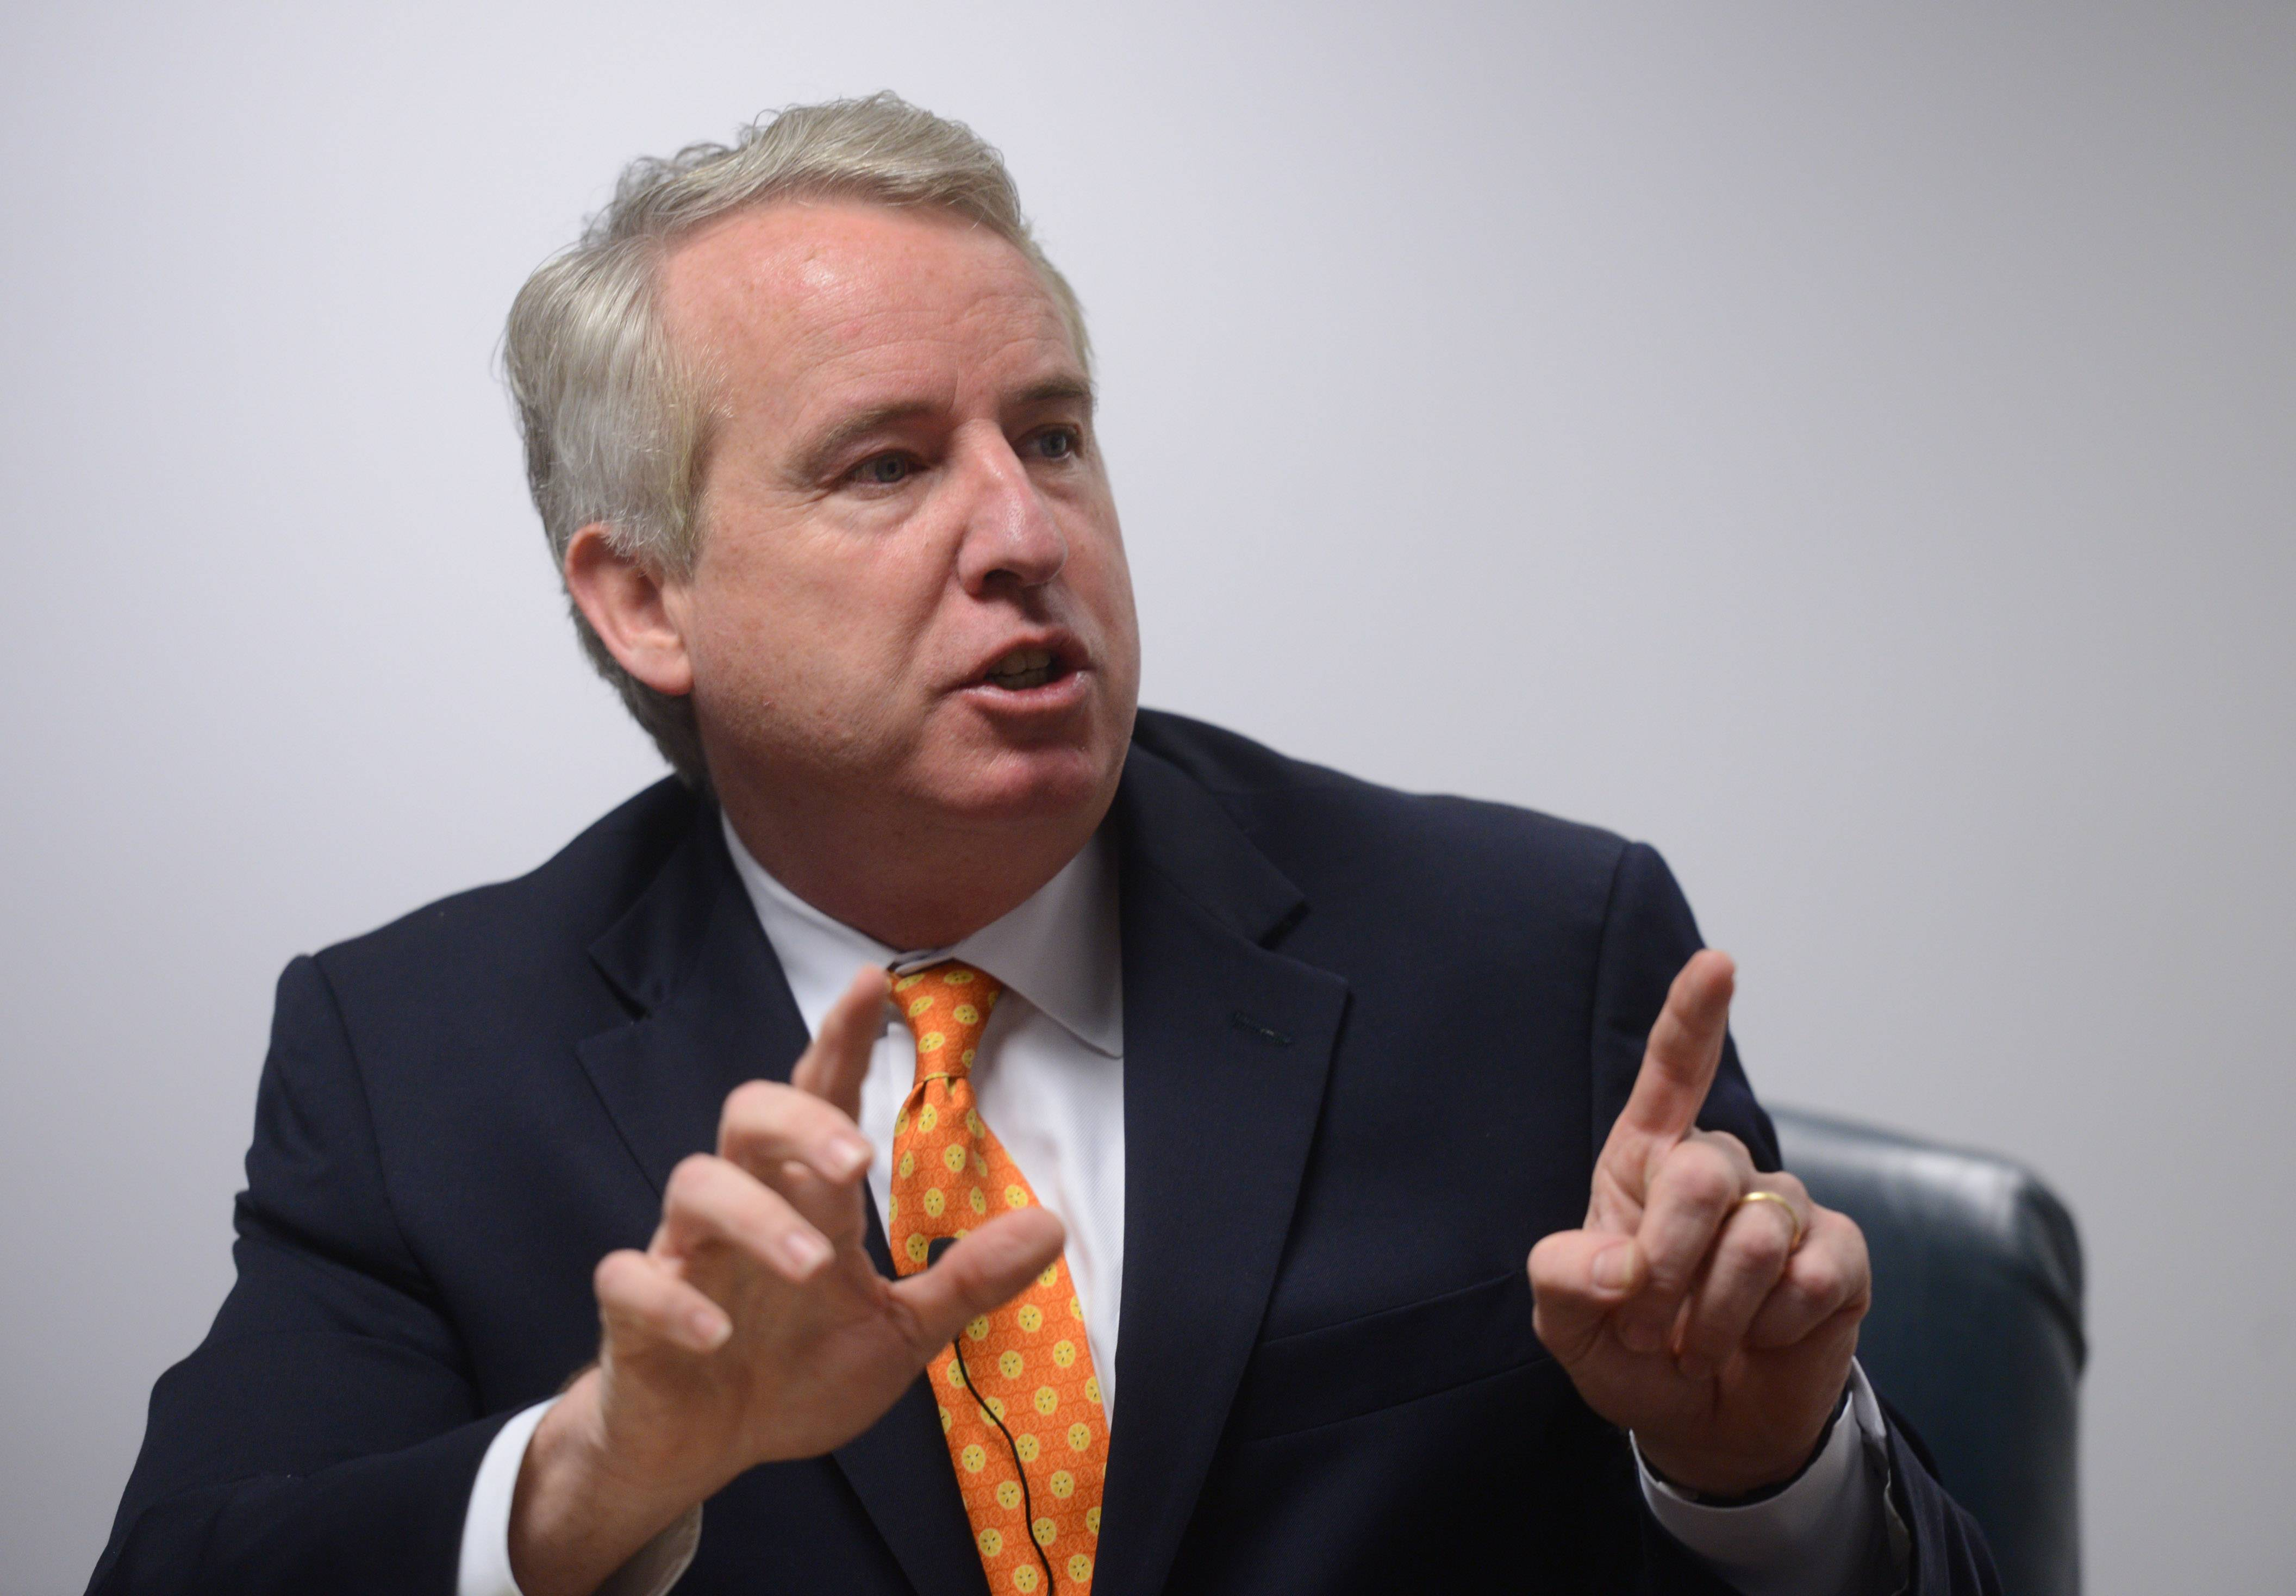 Democratic candidate for governor Chris Kennedy discusses his campaign with the Daily Herald editorial board Thursday.